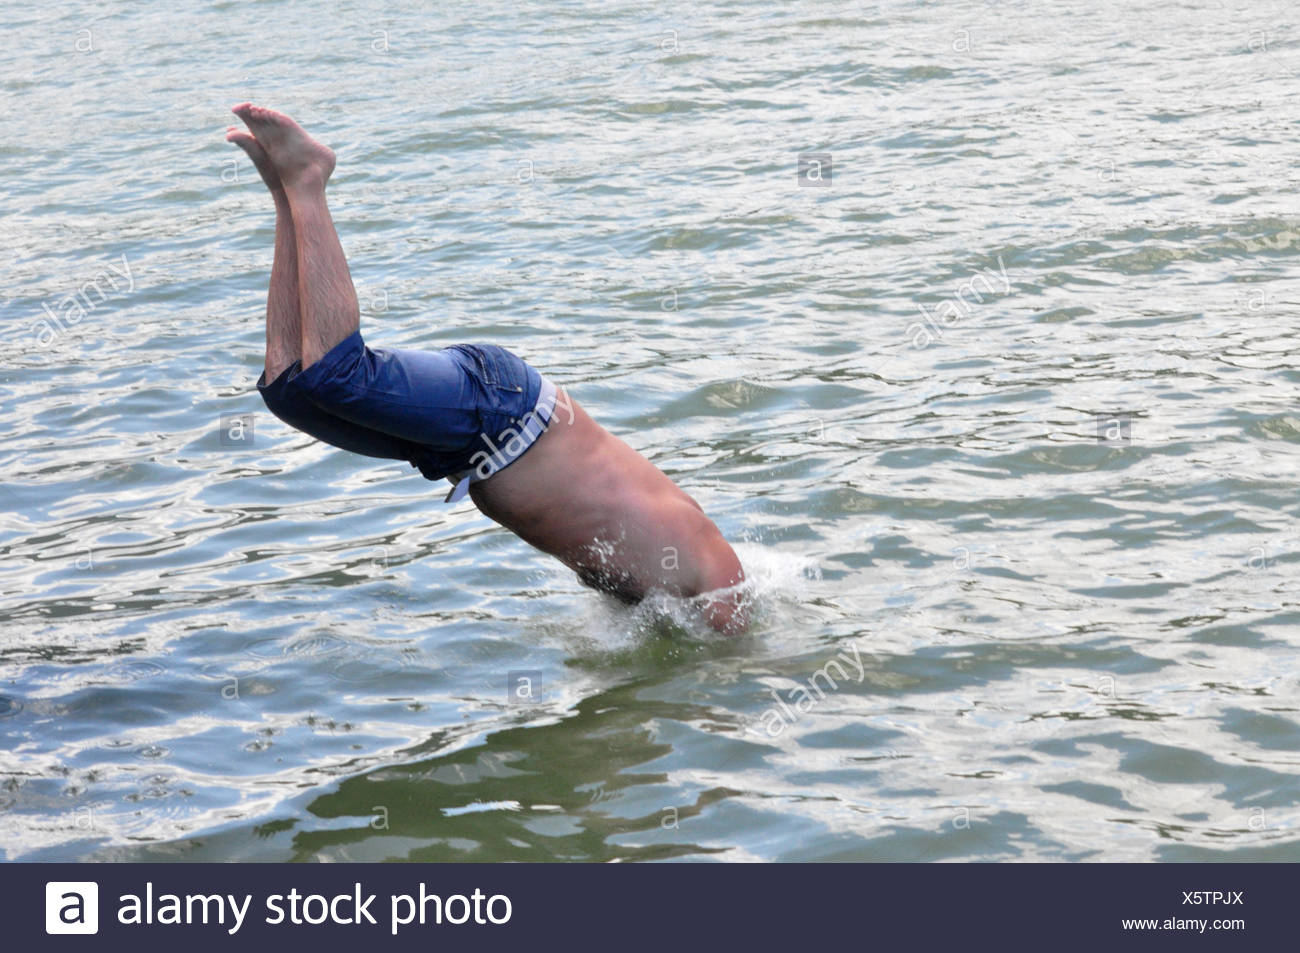 e0a62593a man plunge into water Stock Photo: 278983794 - Alamy